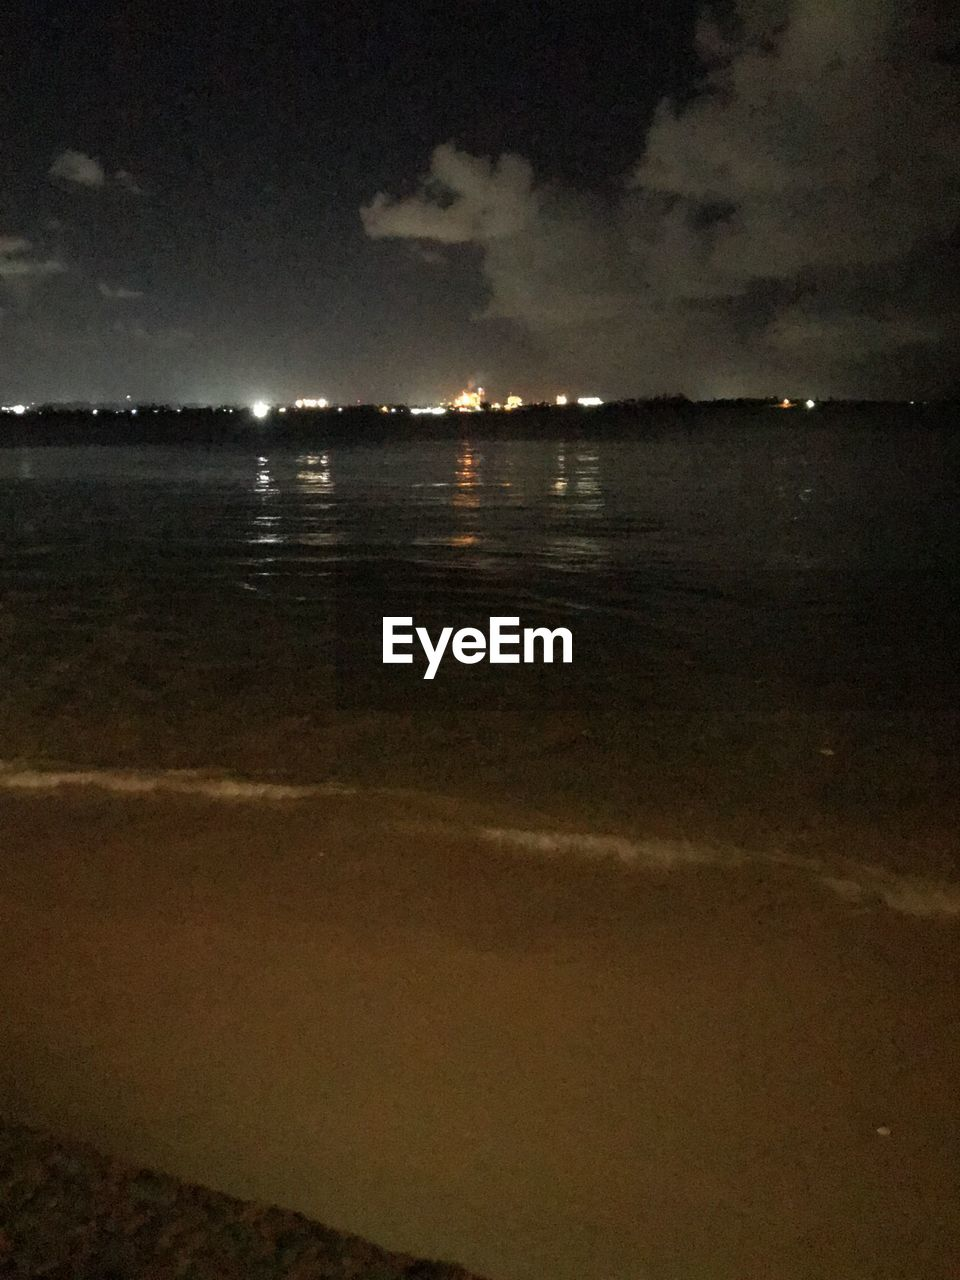 sky, cloud - sky, water, nature, night, tranquility, beach, sea, scenics - nature, beauty in nature, no people, land, tranquil scene, outdoors, environment, reflection, illuminated, dark, dusk